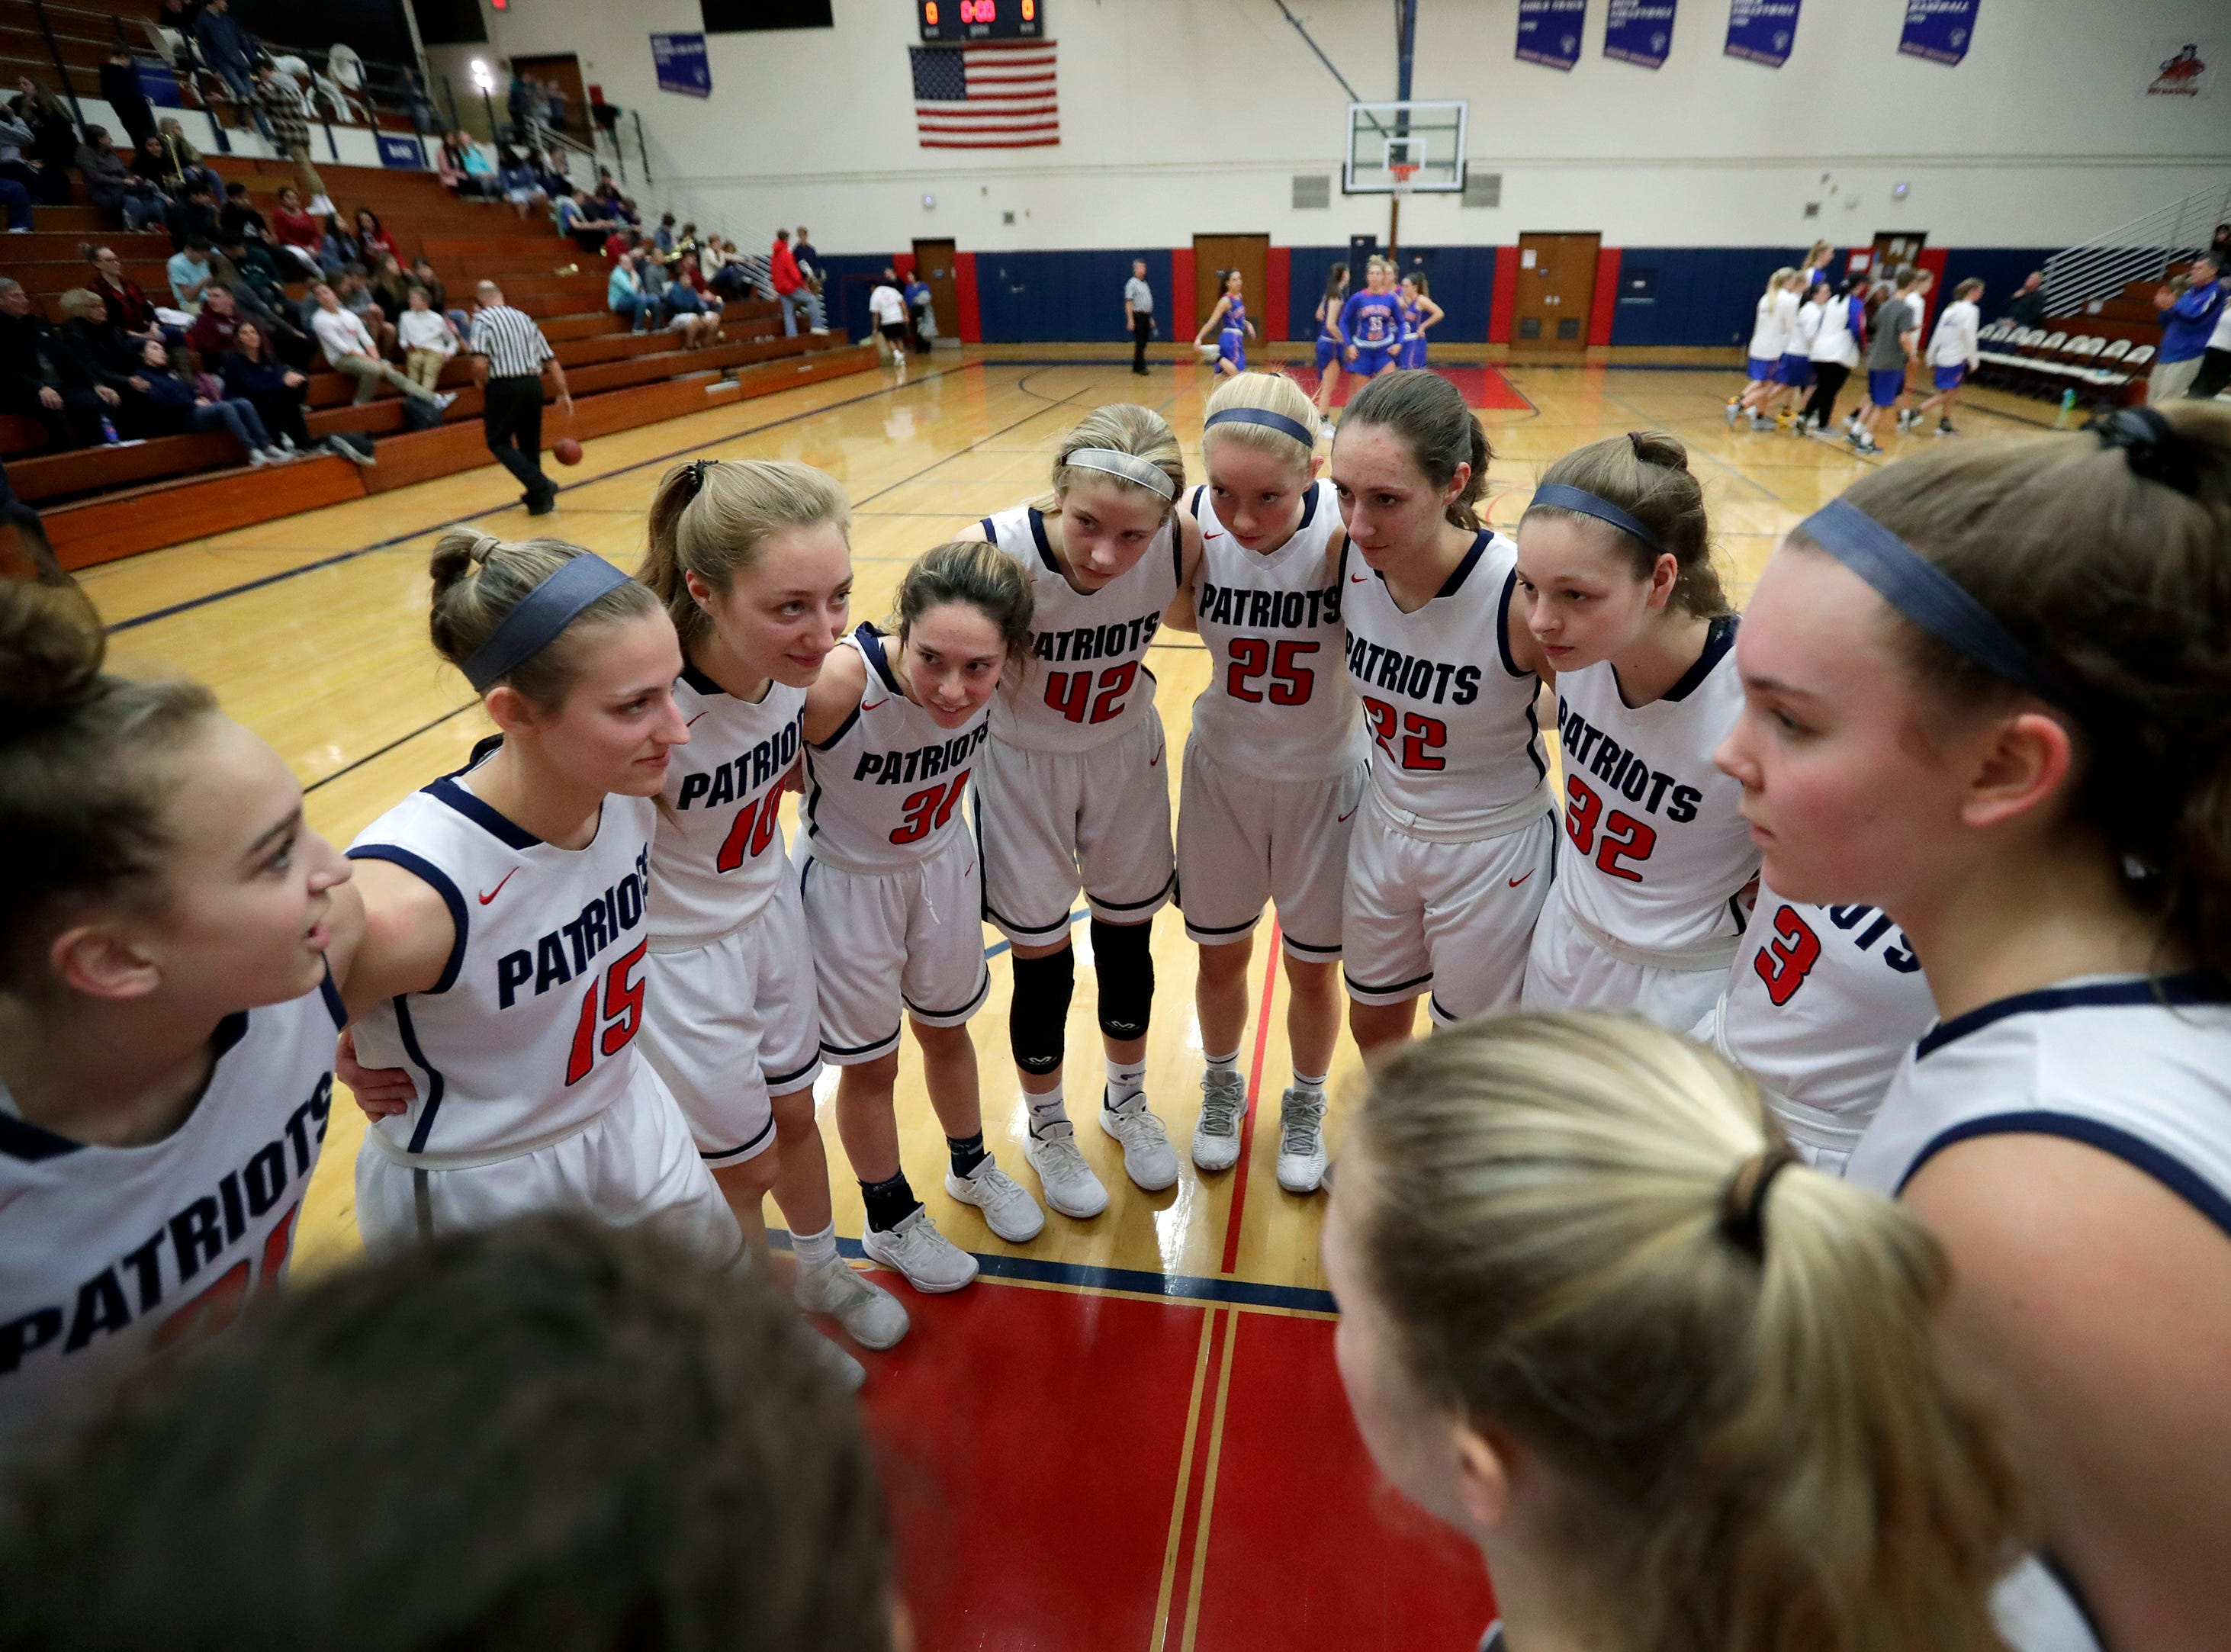 Appleton East High School's players gather arm in arm moments before playing against Appleton West High School during their girls basketball game Friday, January 11, 2019, at Appleton East High School in Appleton, Wis. 